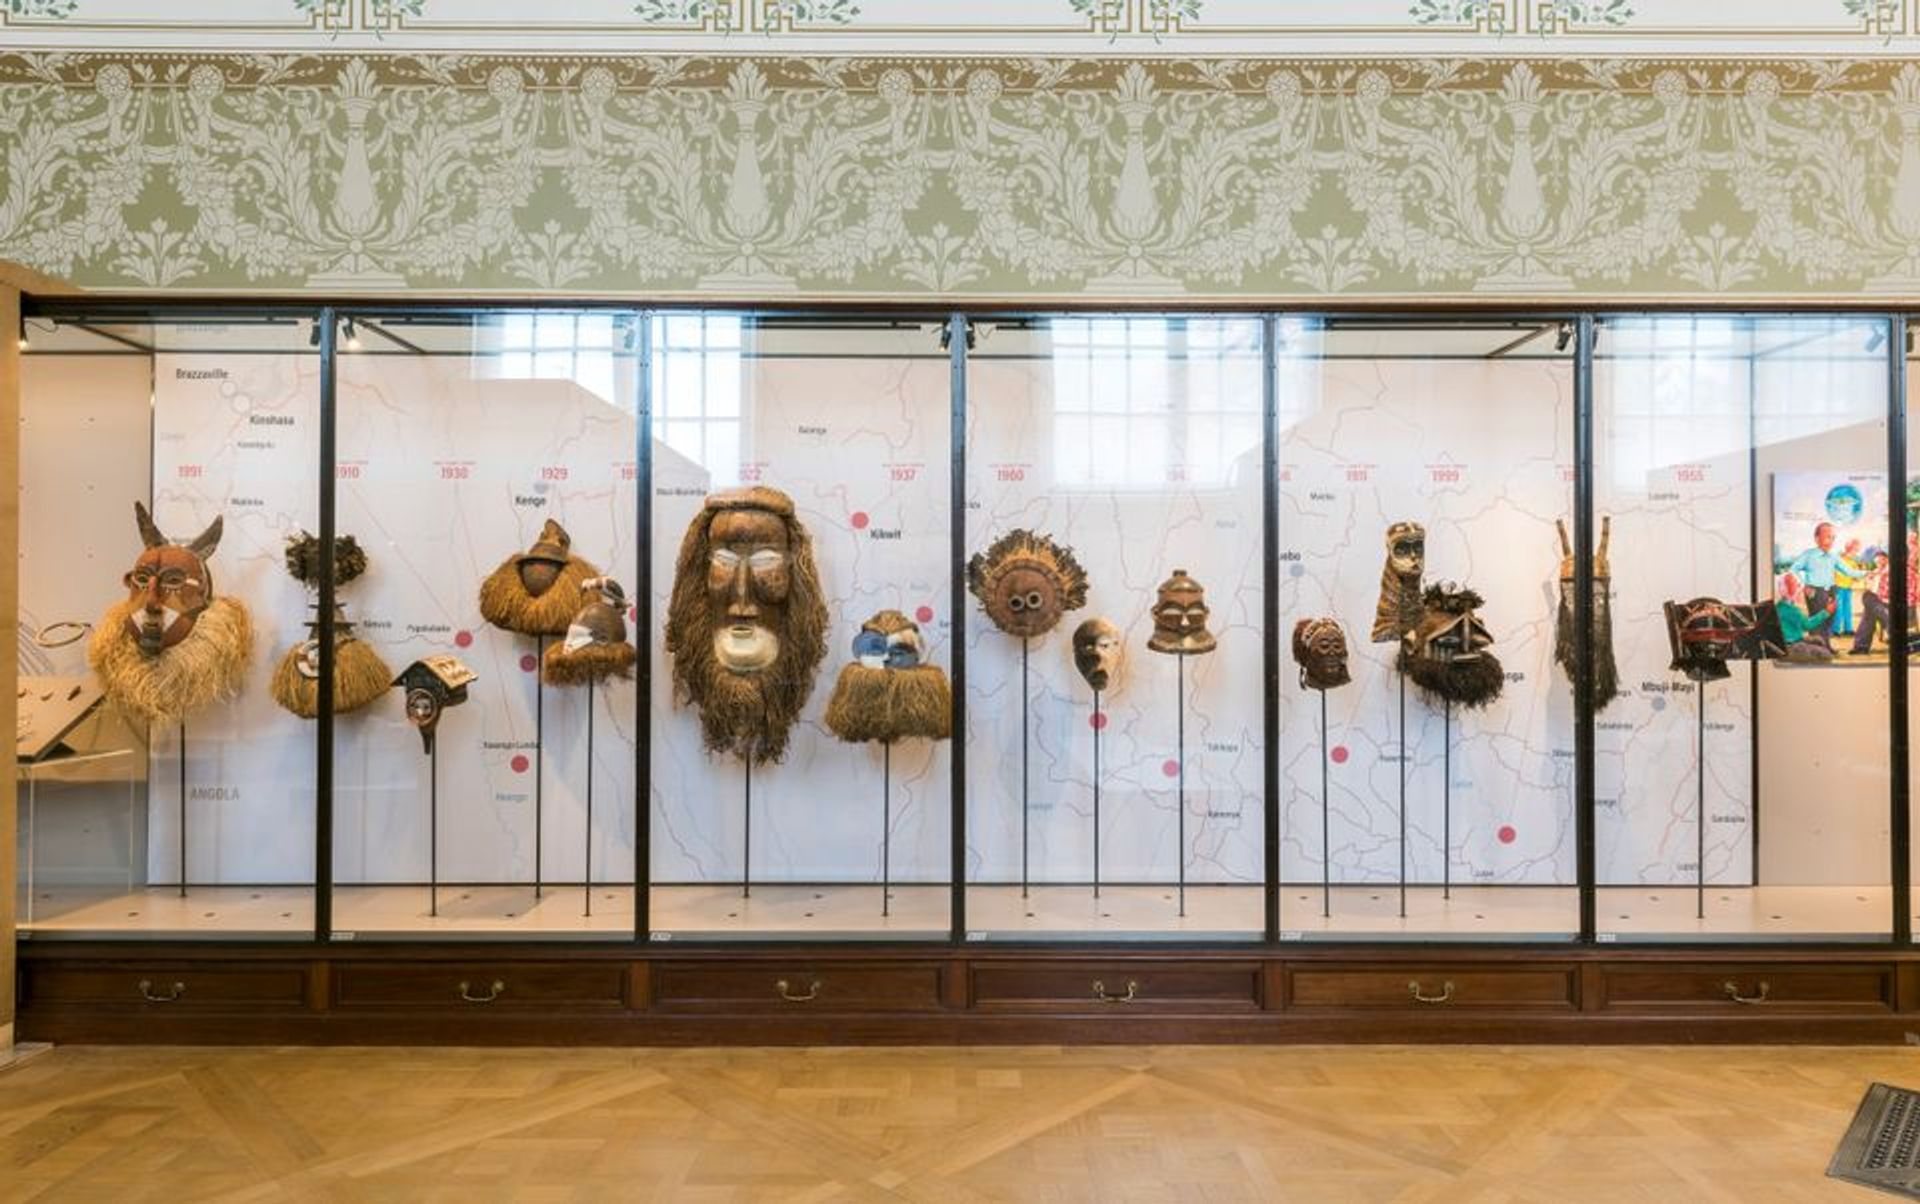 A display in the Africa Museum in Belgium, which last year received an official restitution request from Joseph Kabila, the president of the Democratic Republic of Congo (DRC). © RMCA, Tervuren, photo Jo Van de Vijver